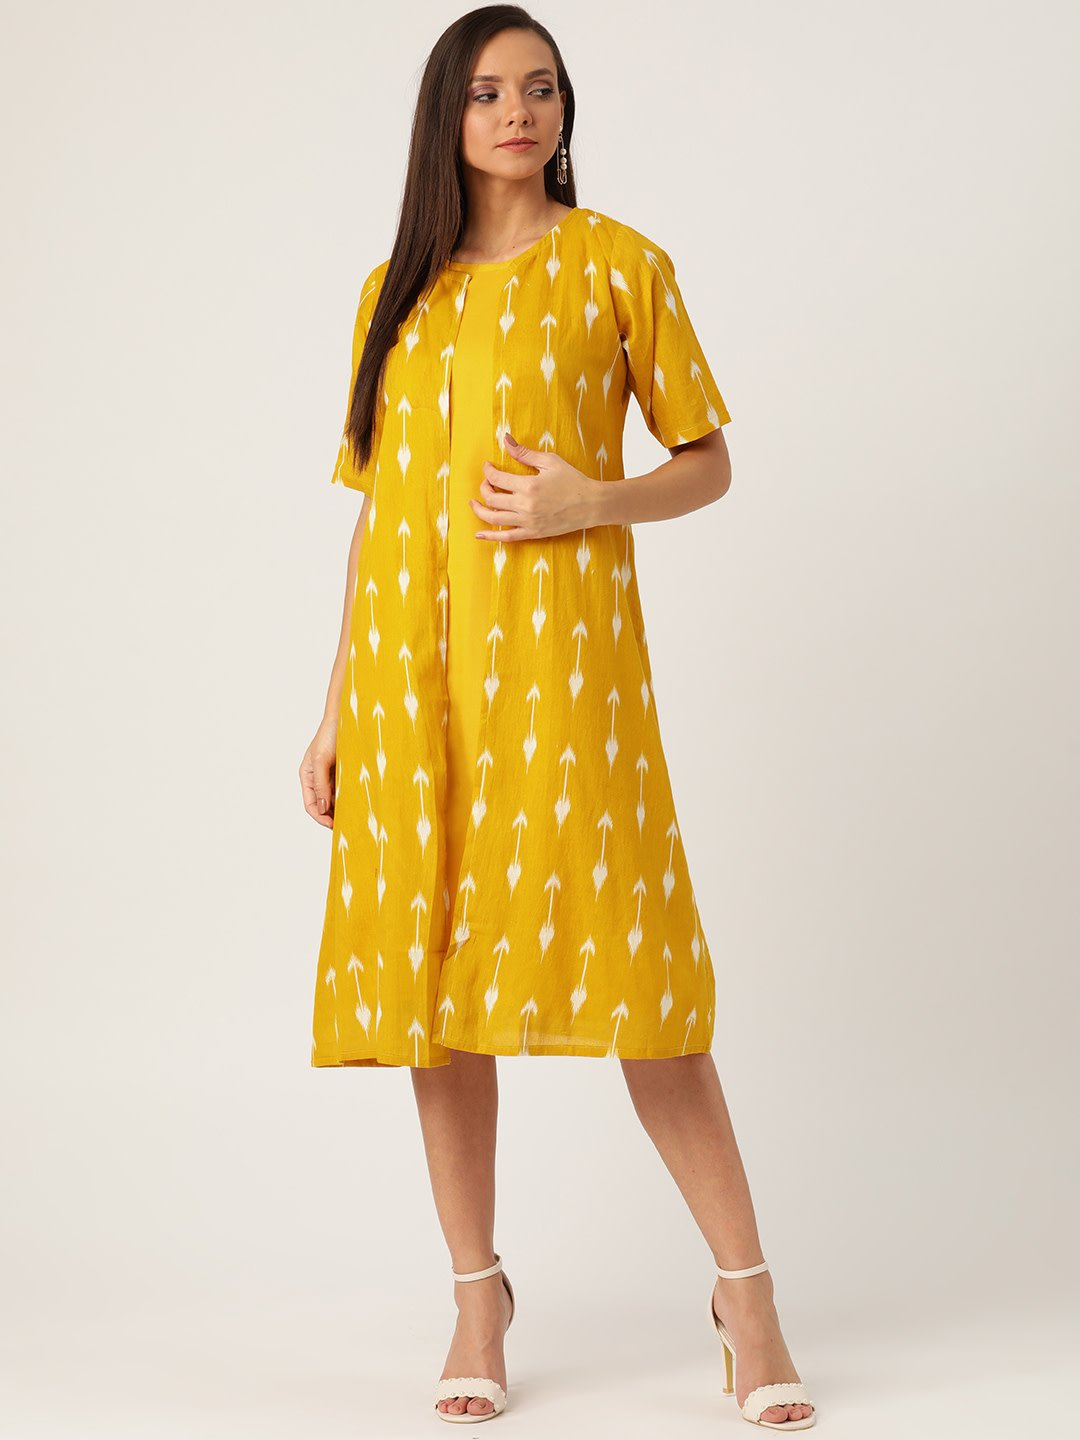 YELLOW ARROW DRESS WITH SHRUG